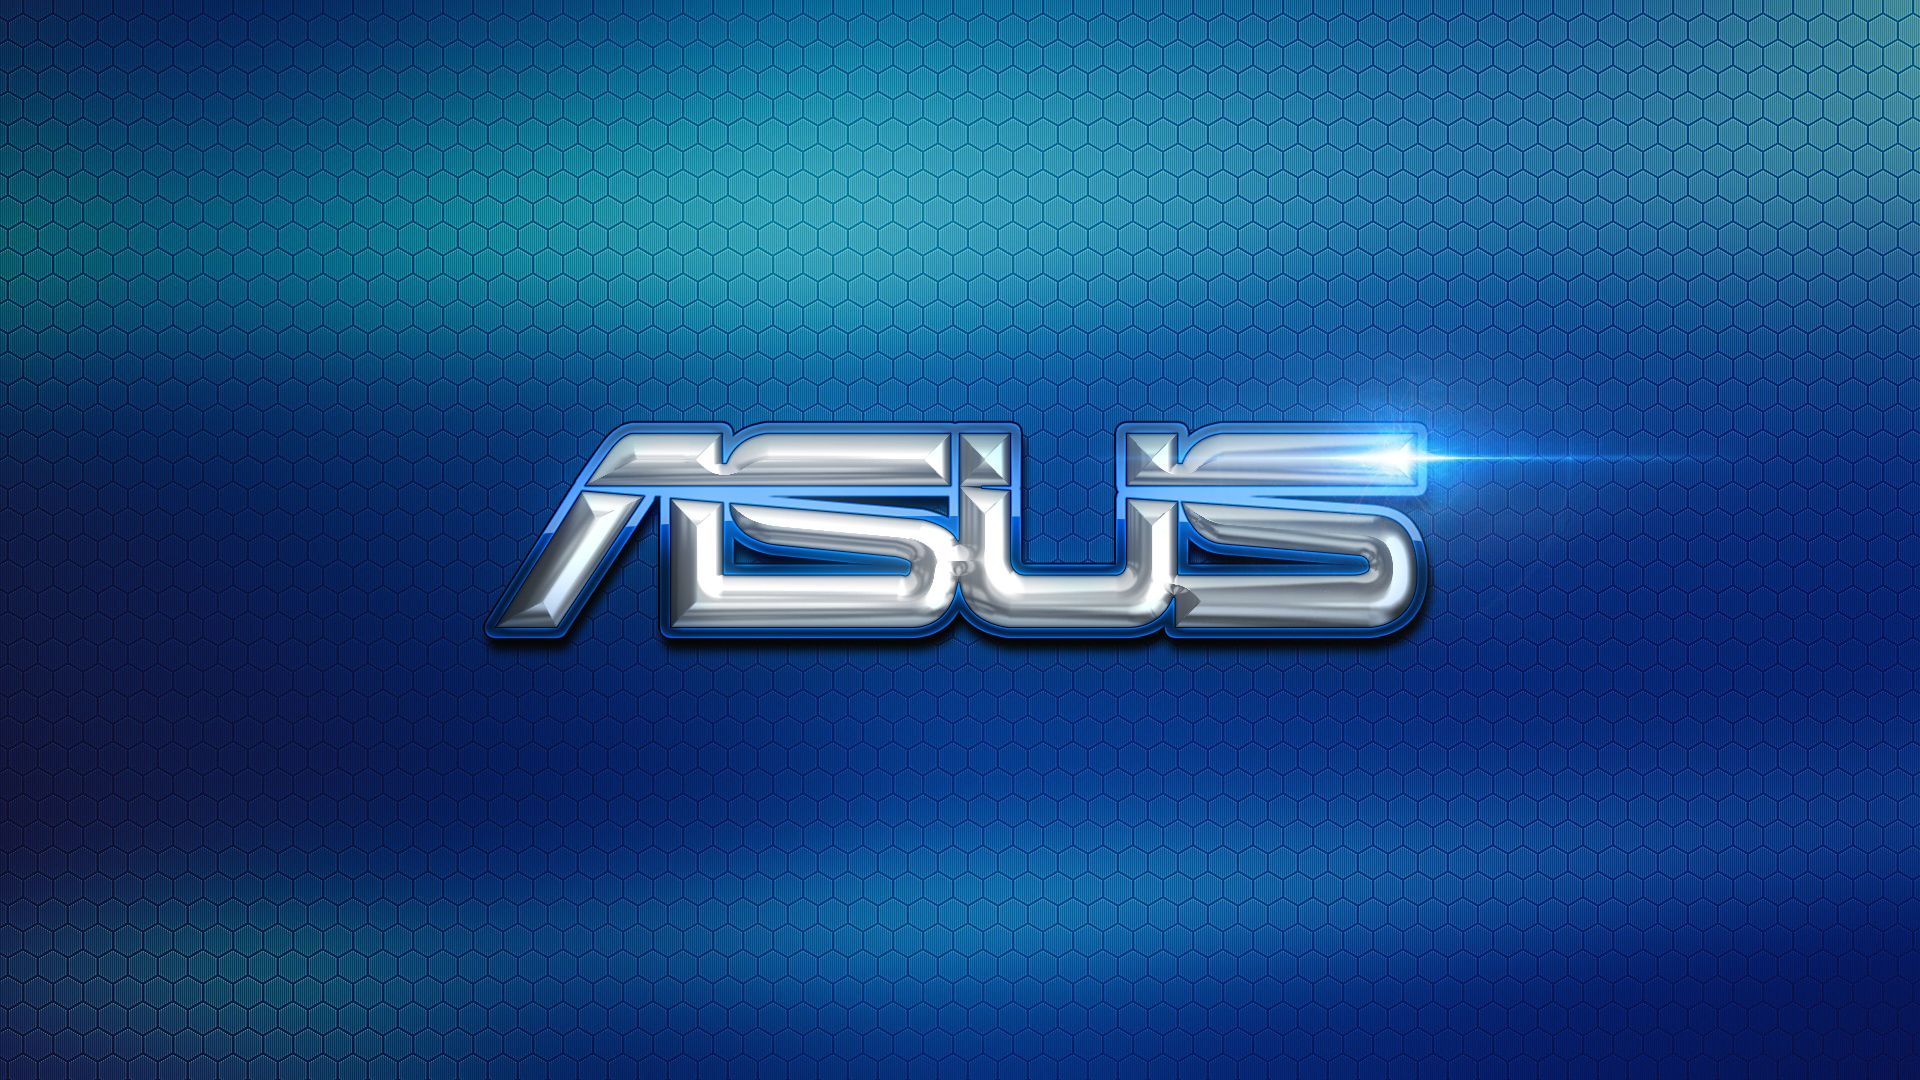 Asus Logos Download